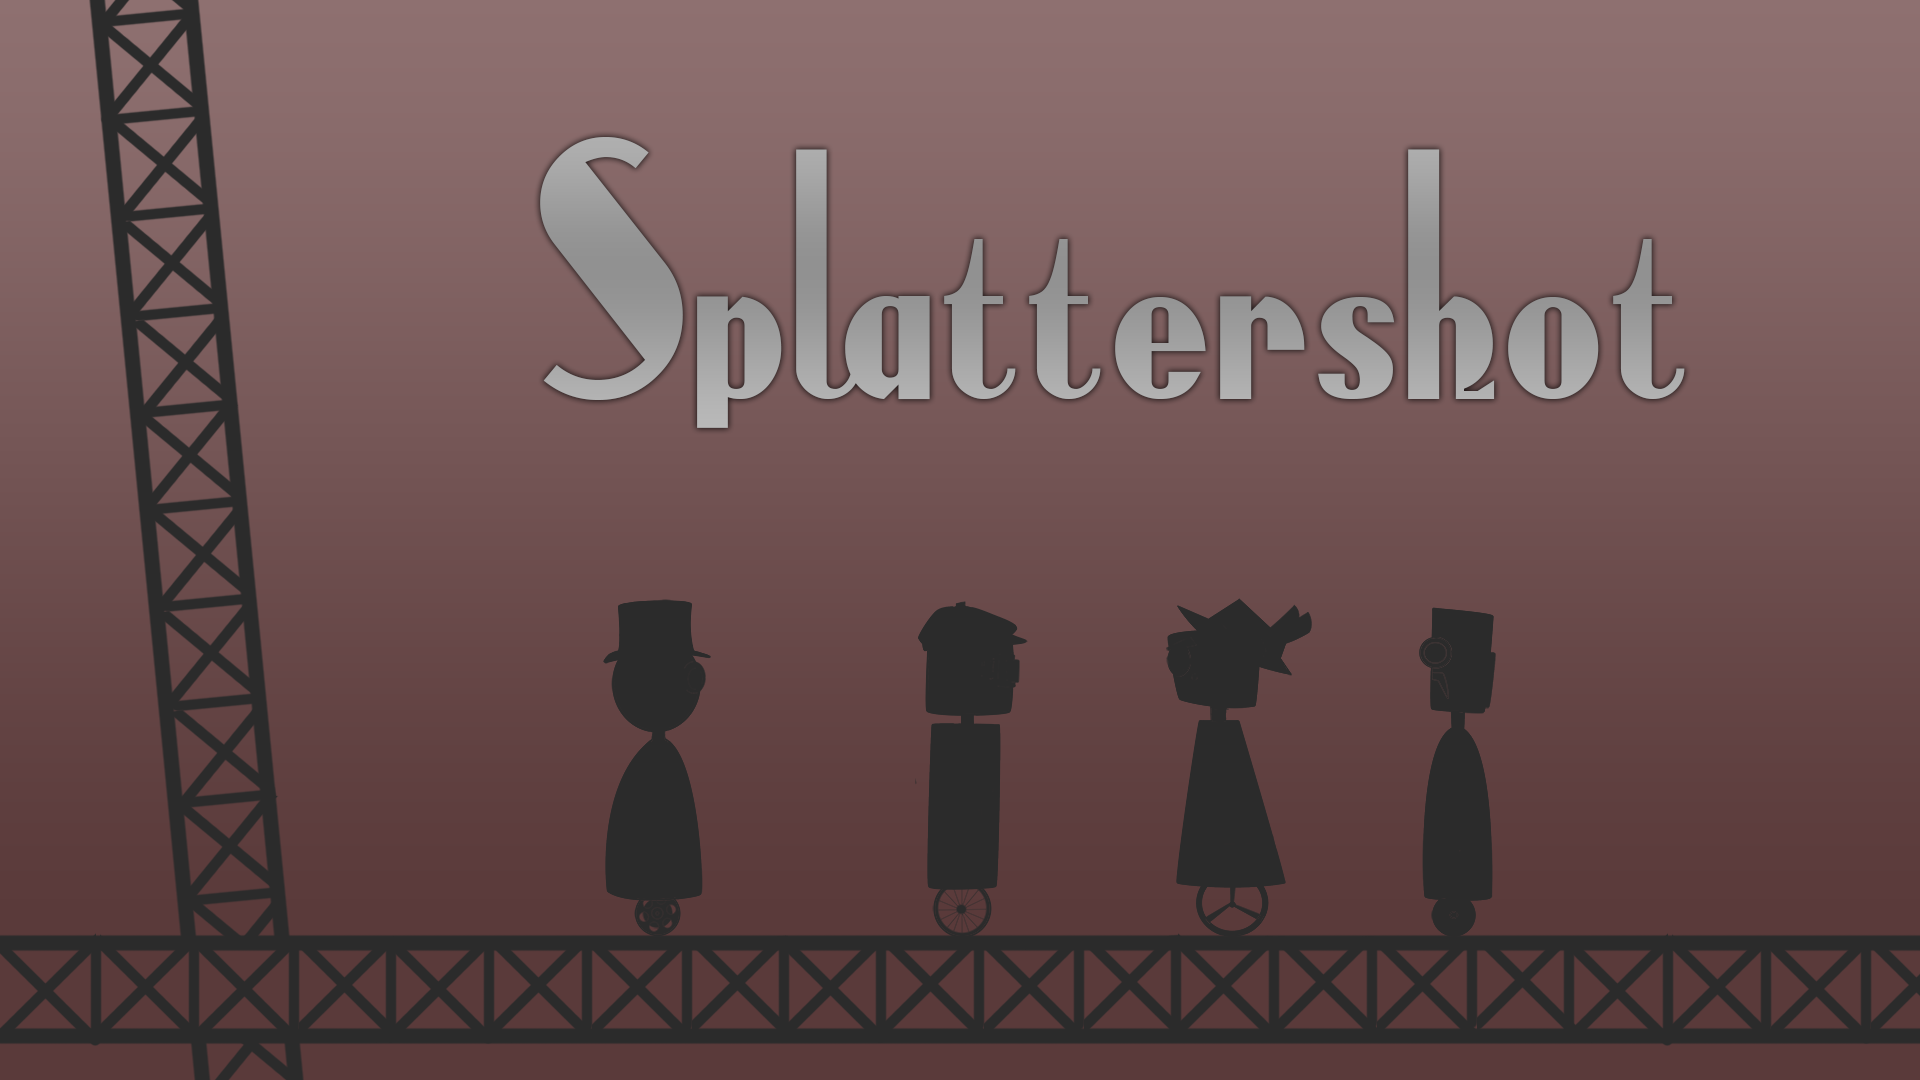 Splattershot - 2d multiplayer battle-arena game